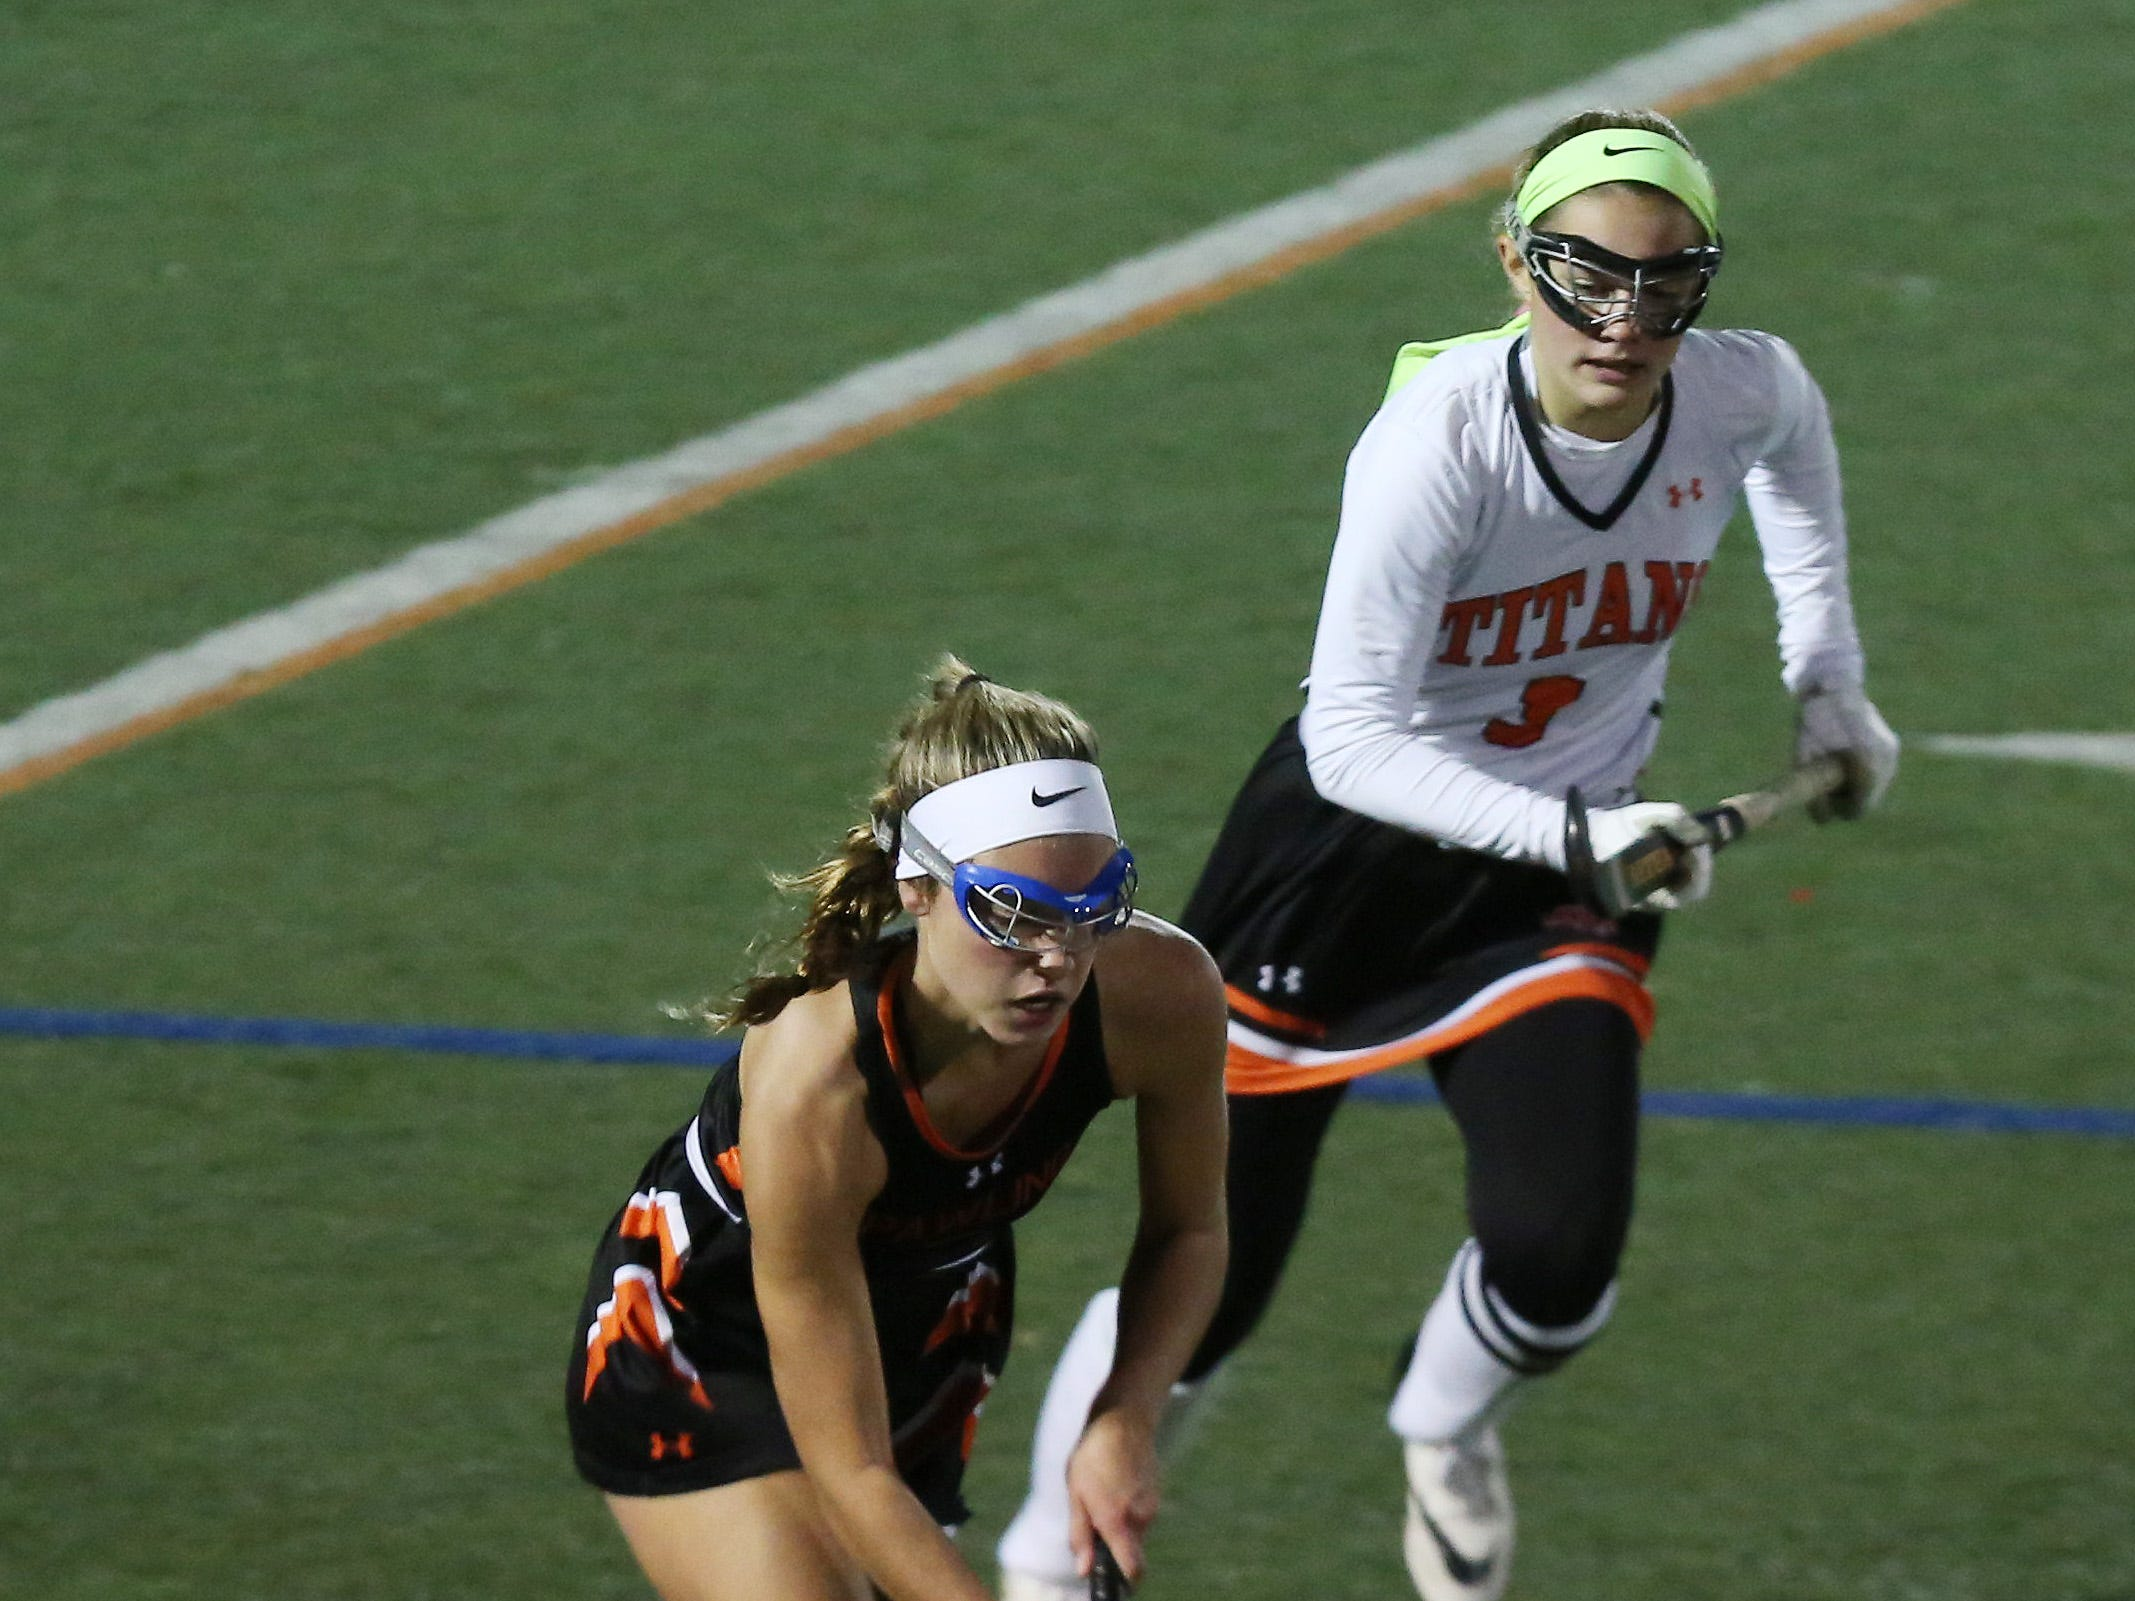 Pawling's Kiera Tucci (3) moves the ball up the field against Taconic Hills during the Class C field hockey regional semifinal at Dietz Stadium in Kingston Oct. 30, 2018. Pawling won the game 1-0.